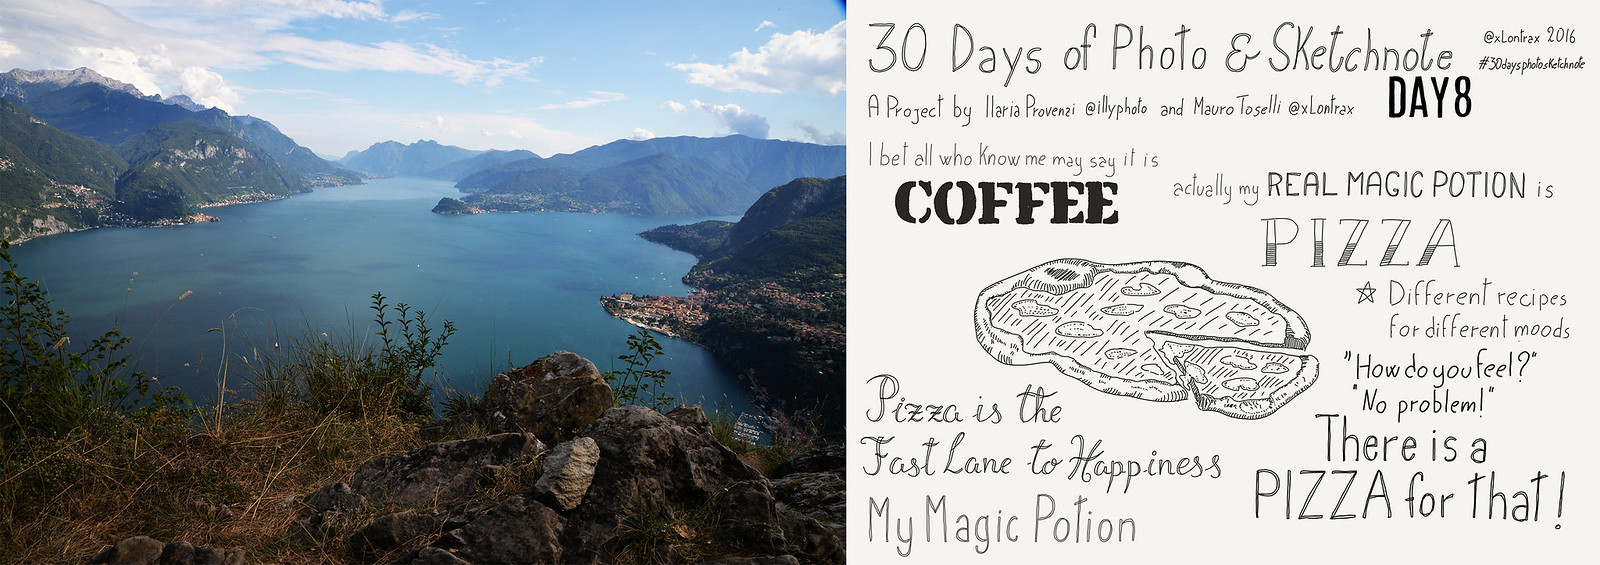 Day 08. La mia pozione Magica! - My Magic Potion!